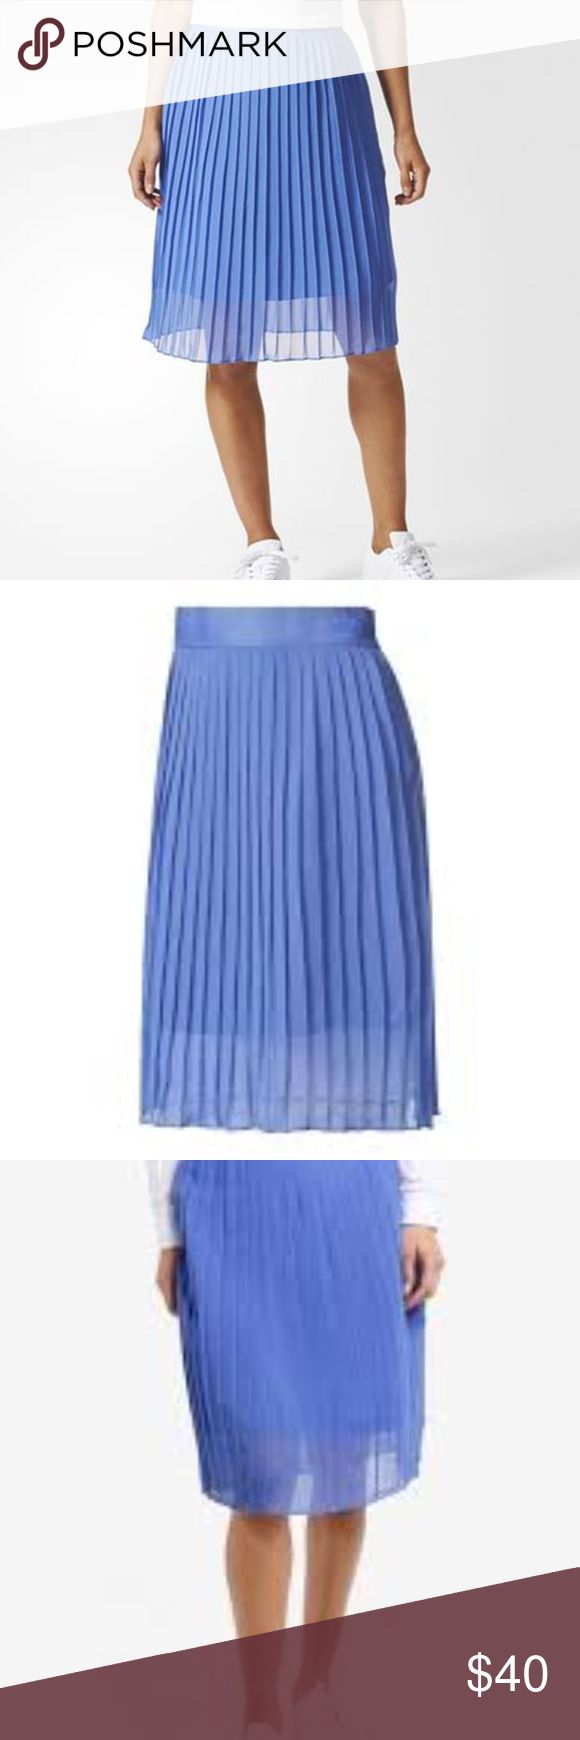 """Adidas Originals Ocean Elements Pleated Skirt NWT Adidas Originals Ocean Elements Pleated Skirt  Size Medium New With Tags Side Zipper approx 30"""" waist  and 24"""" long adidas Skirts Midi"""